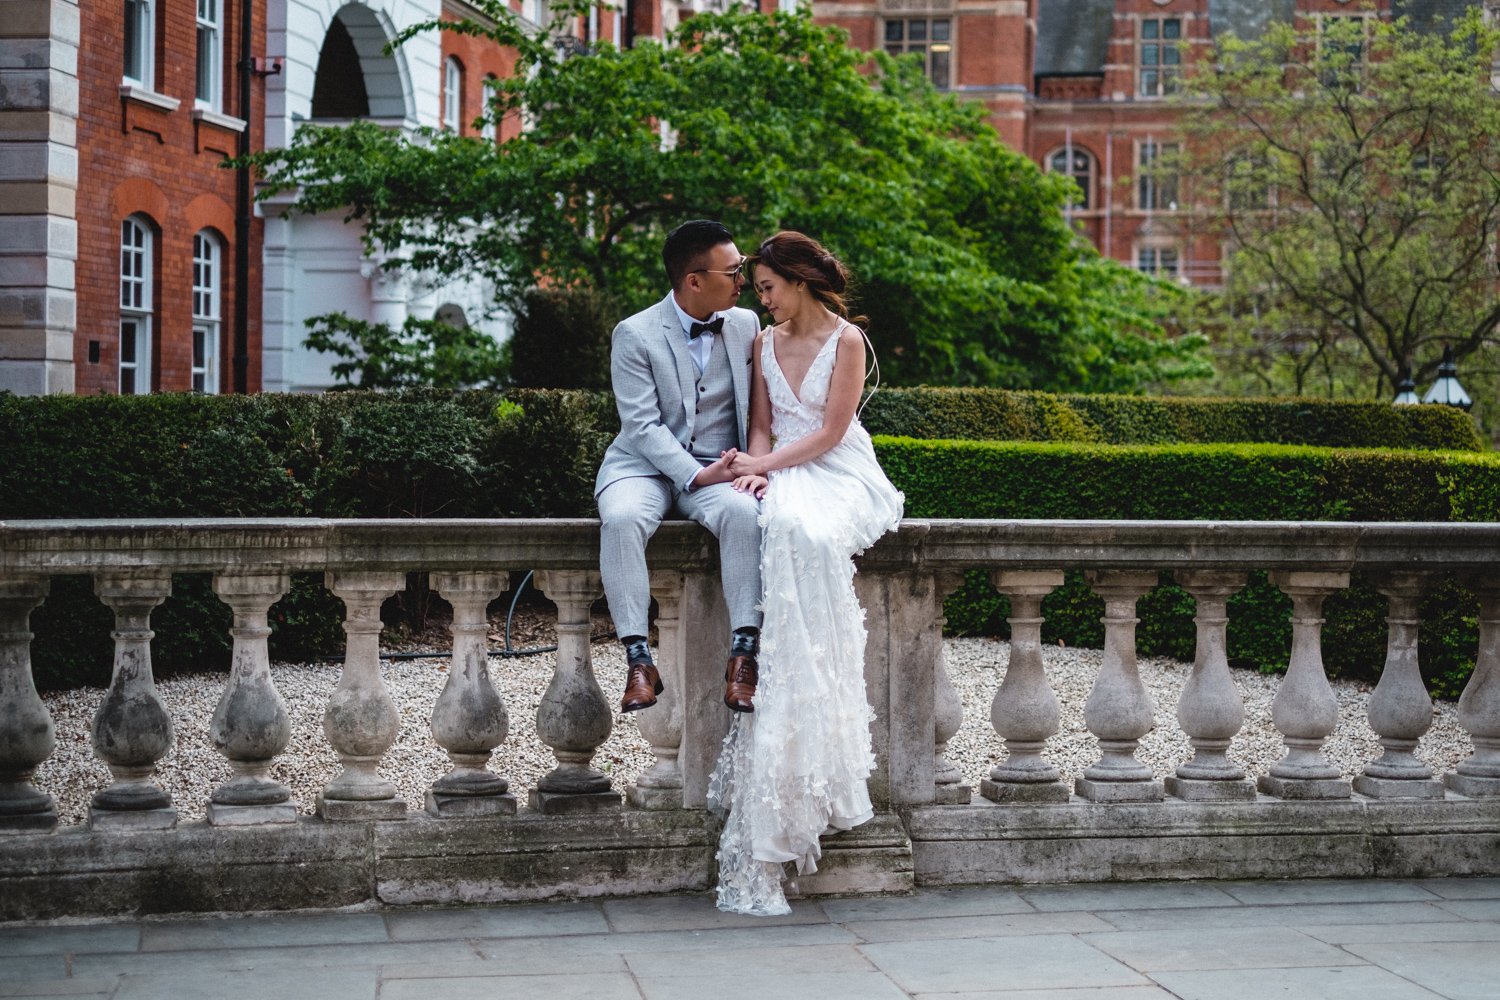 Copy of London pre-wedding photos - kensington